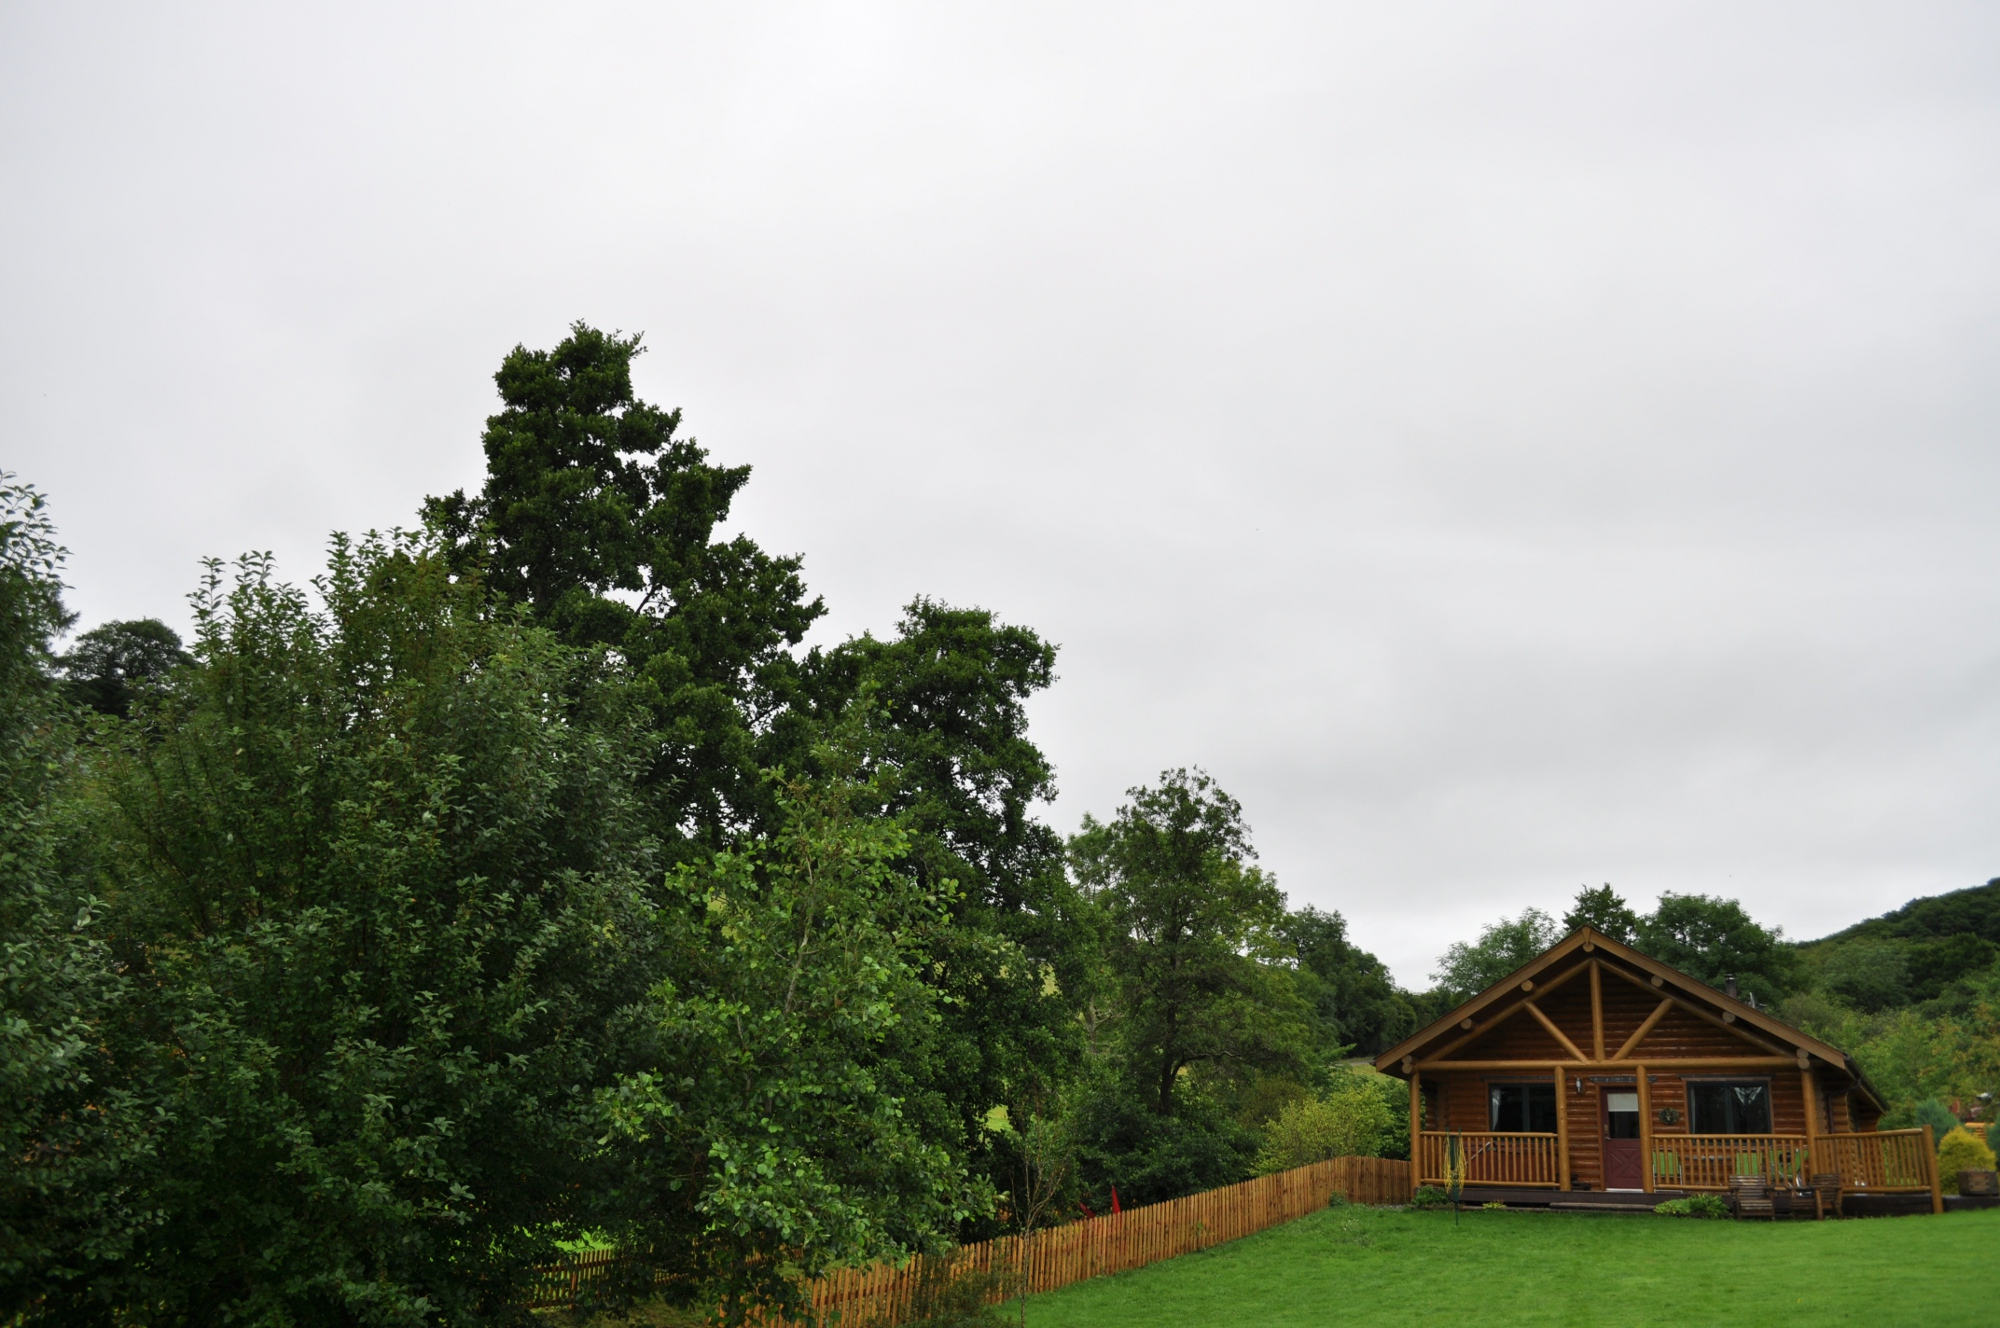 Blackhall Lodges in Shropshire